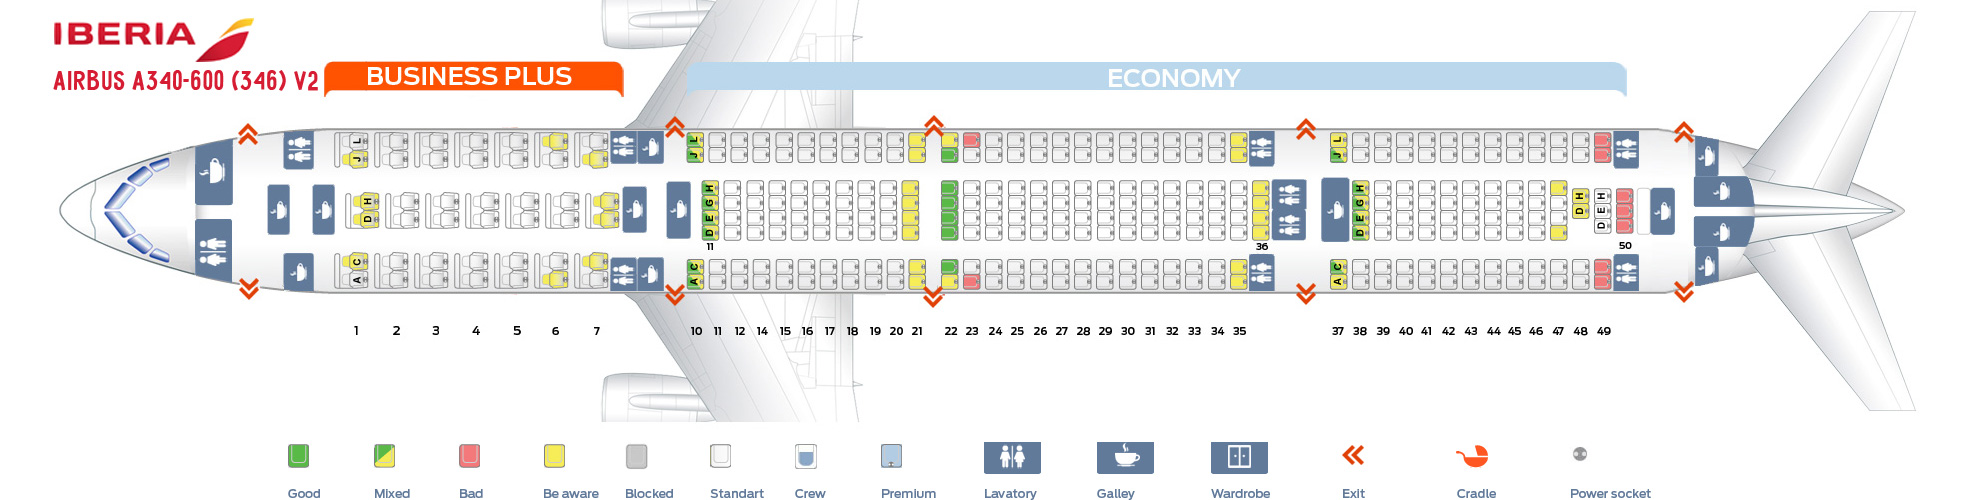 Seat Map Airbus A340 600 Iberia Best Seats In The Plane